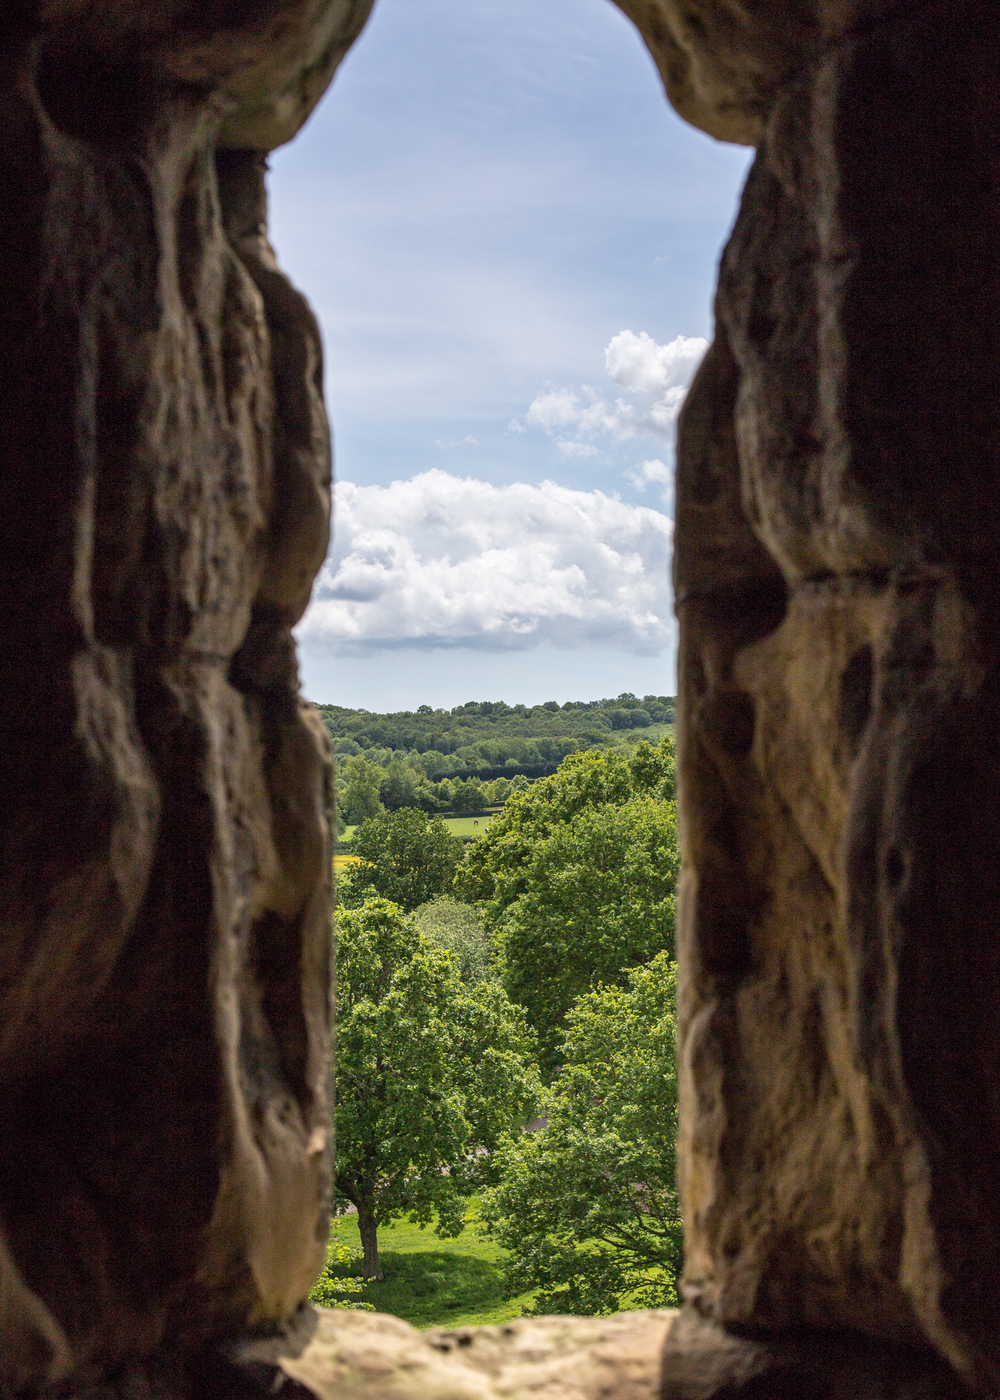 From inside the castle, there are great views over the surrounding countryside.